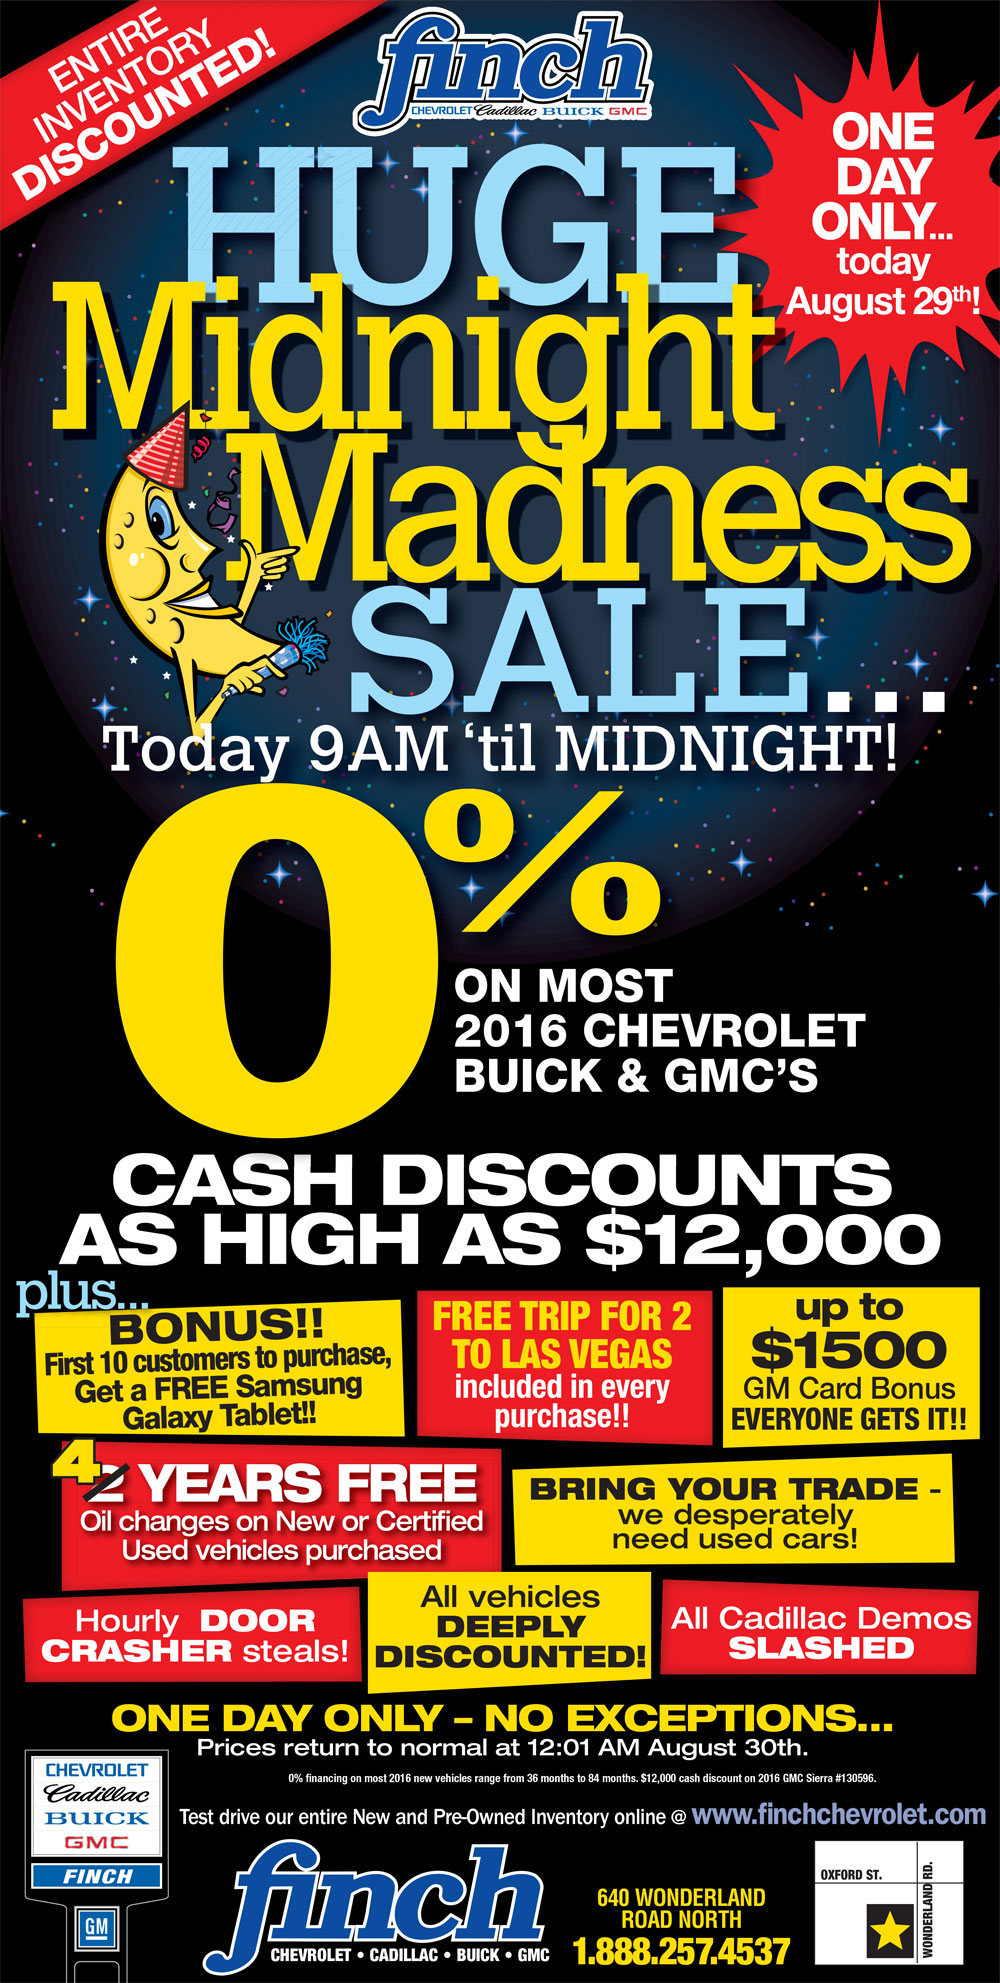 Enjoy the Midnight Madness Blowout in London Ontario at Finch Chevrolet Cadillac Buick GMC